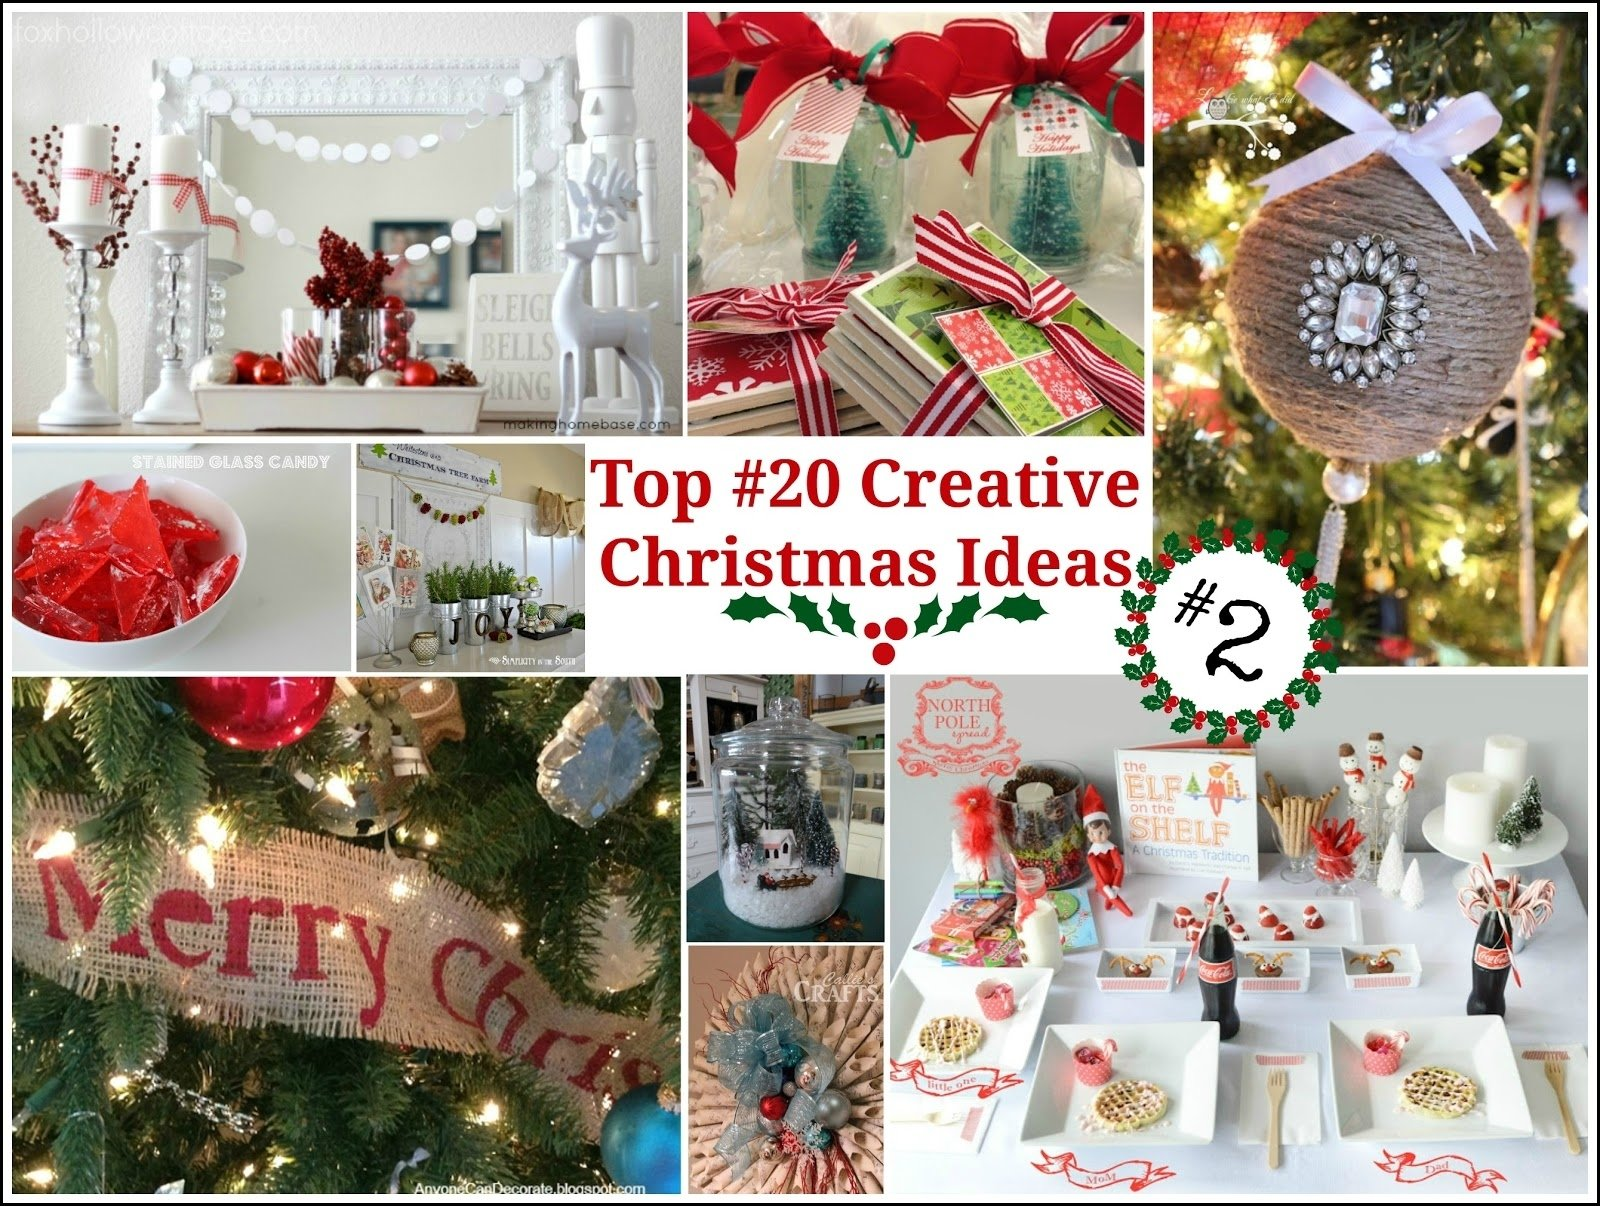 10 Unique Christmas Gift Ideas On Pinterest top 20 creative christmas ideas ii fox hollow cottage 4 2020